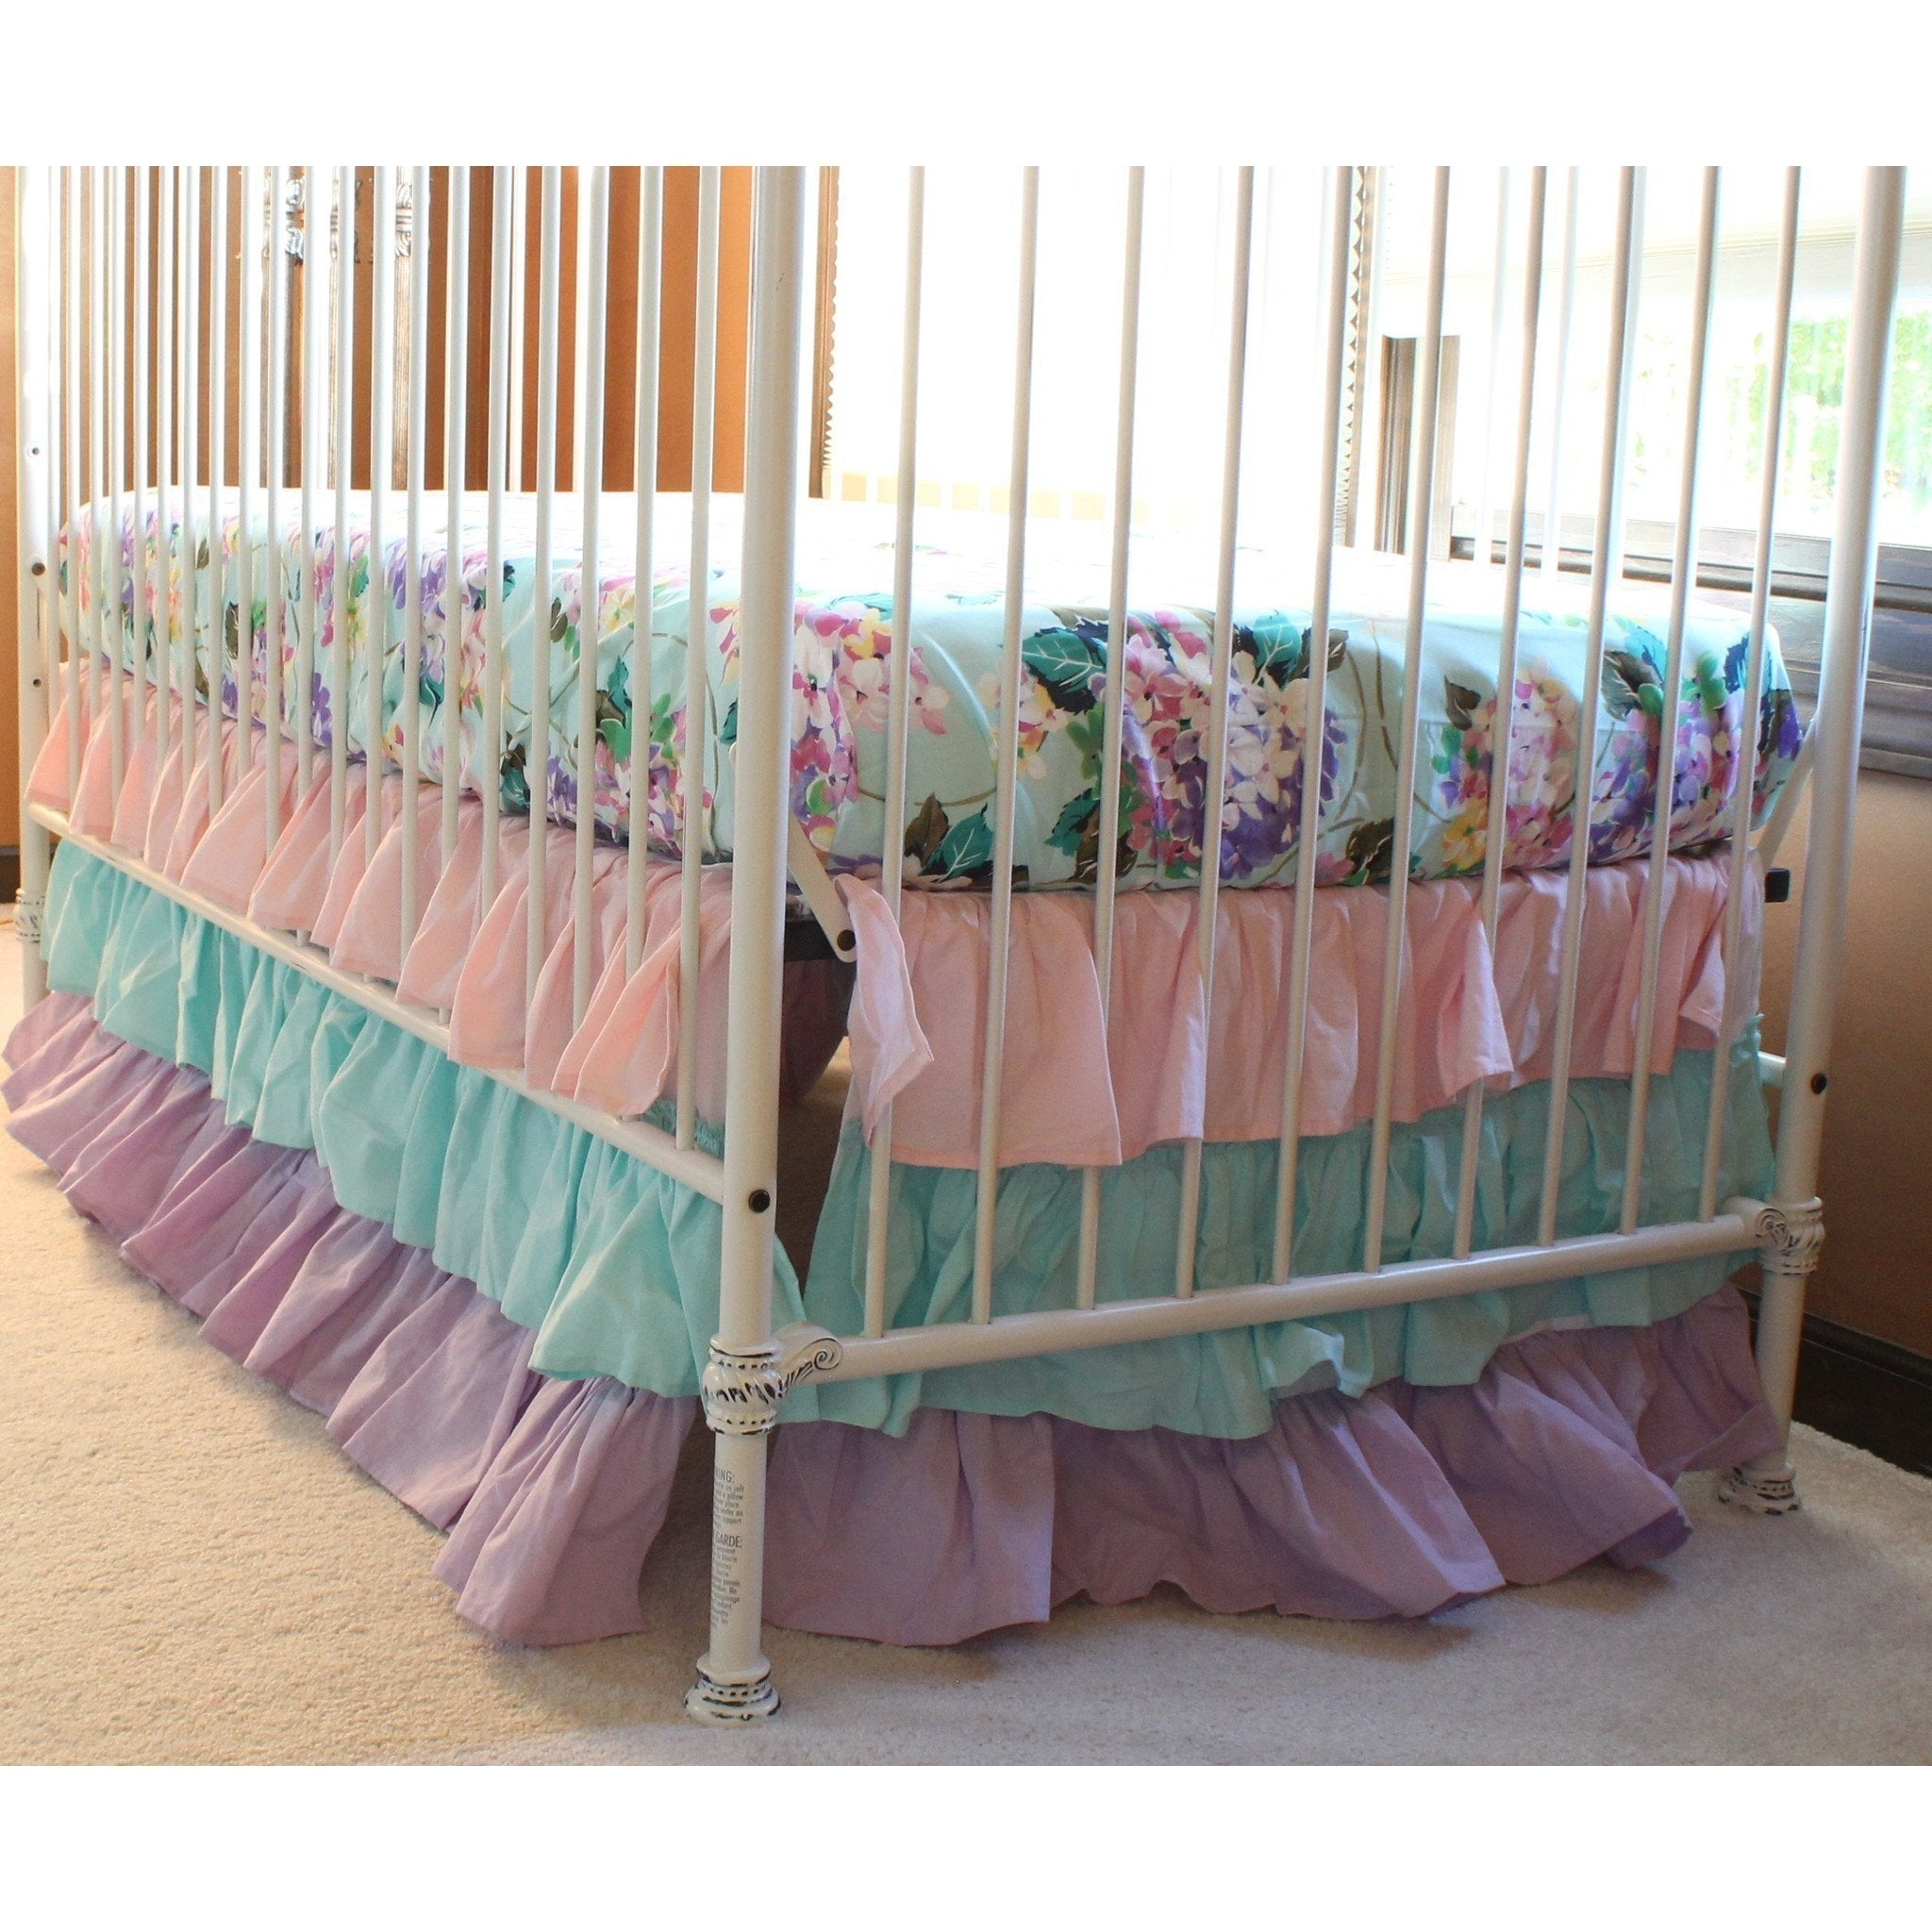 green cordelias boy floral luxury cribs coral blue girl full and size cordelia nursery bumper infant disney crib lavender designs hopes pastel teal skirt baby neutral dreams of setsr sets set bedding sheets pink bold purple